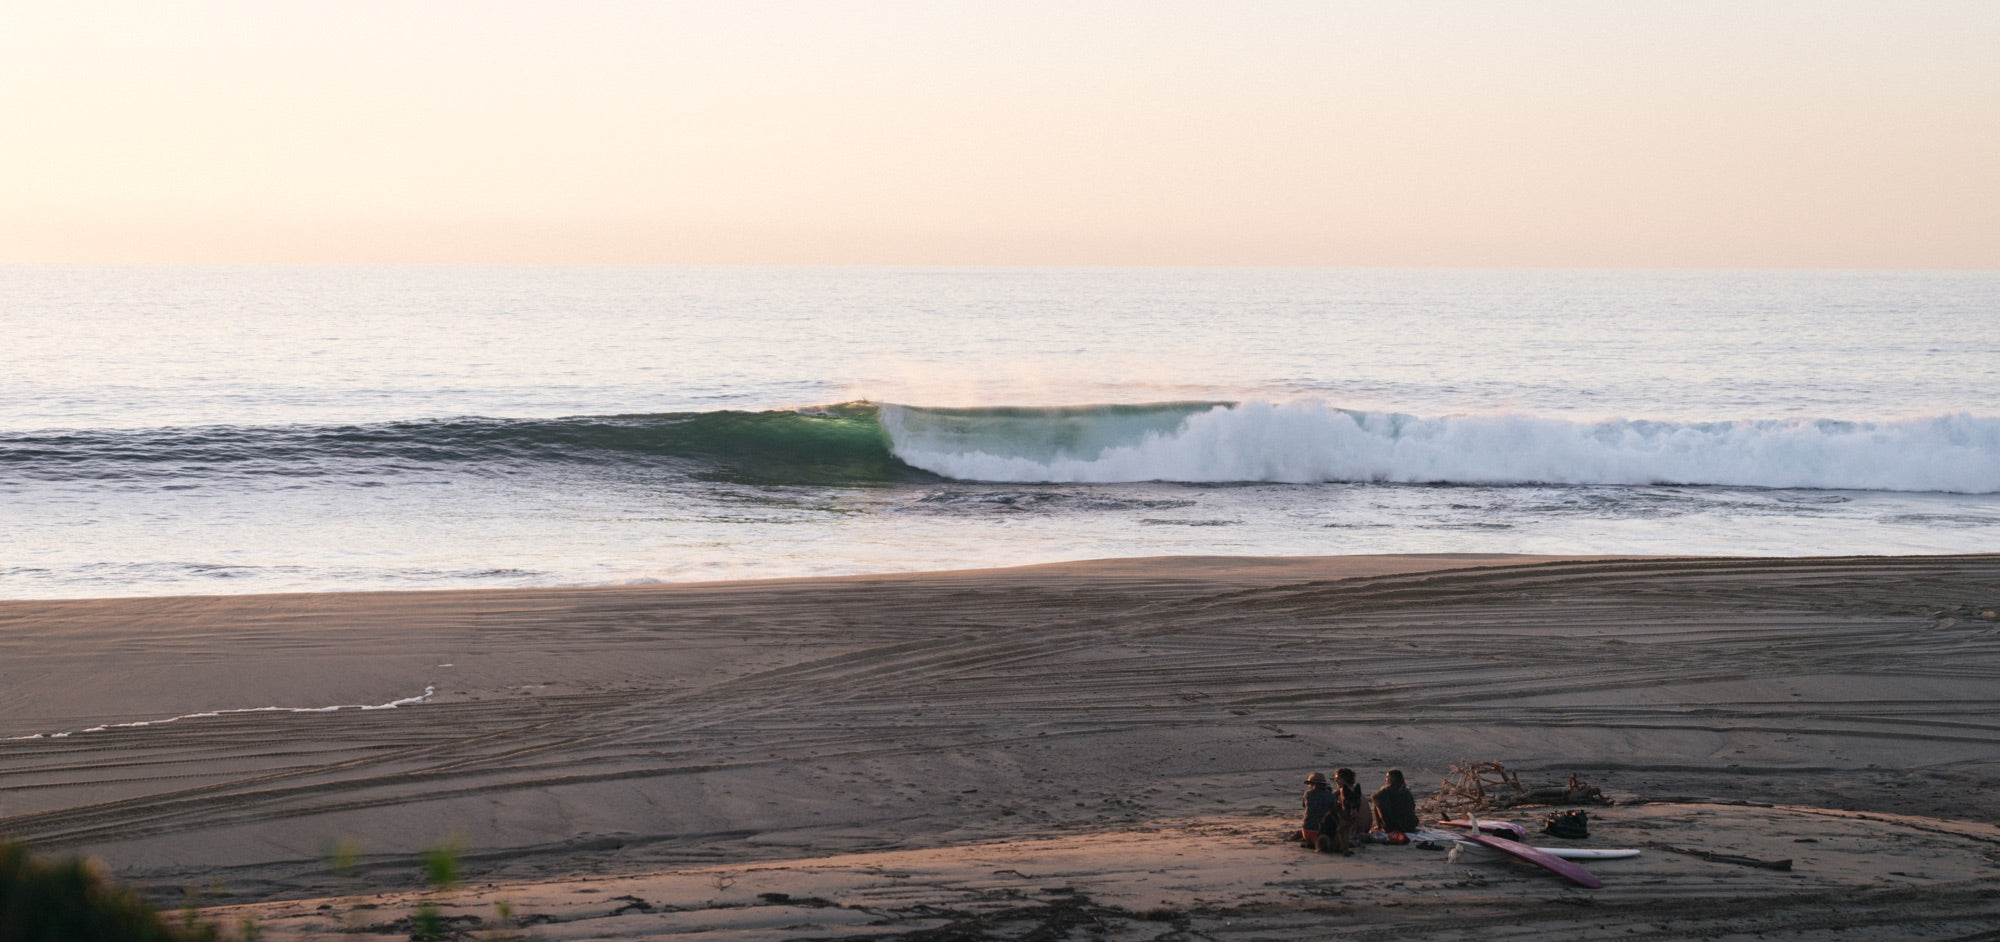 A group of friends sit on the beach at dusk as a perfect wave rolls through